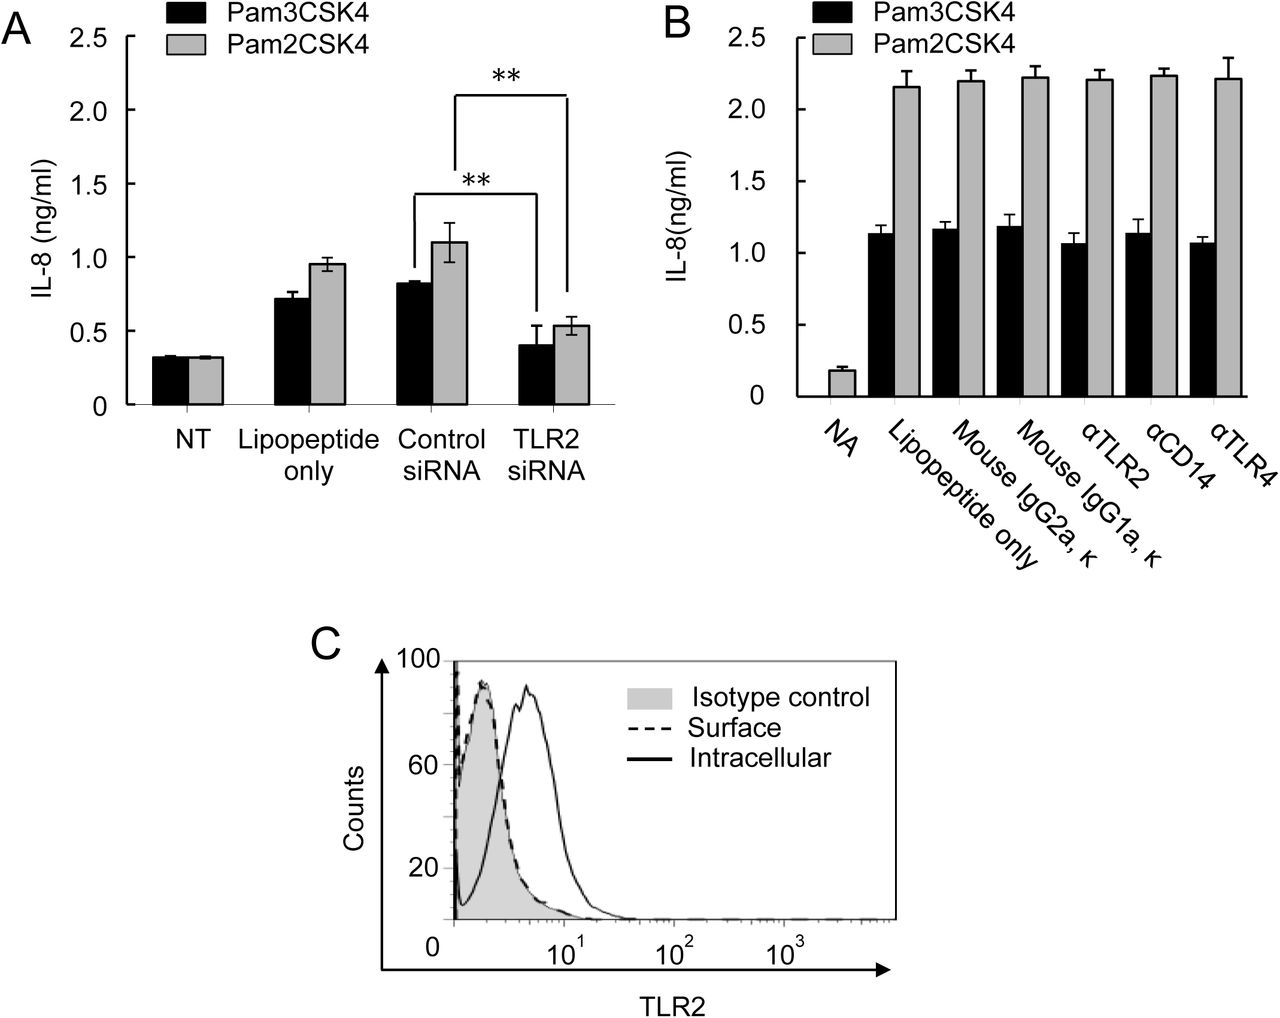 Lipopeptides induce IL-8 expression via intracellular TLR2 in A549 cells. (A) TLR2 knockdown effect on IL-8 production induced by lipopeptides in A549 cells. siRNA-transfected cells were treated with either pam2CSK4 or pam3CSK4 for additional 24 h. (B) Blocking antibodies for TLR2, TLR4, and CD14 had no effect on lipopeptide-induced IL-8 production. Cells were treated with blocking antibodies for 1 h prior to the lipopeptide stimulation for 24 h. Mouse IgG2aκ (for TLR2 and TLR4 antibodies) and IgG1aκ (for CD14 antibody) were used as isotype controls. Bars indicate means ± S.D. (n=3). (C) Intracellular localization of TLR2 in A549 cells was determined by immunostaining and FACS. Grey areas indicate isotype control. Dotted lines indicate fixed cells for surface staining and closed lines indicate permeabilized cells for intracellular staining of TLR.